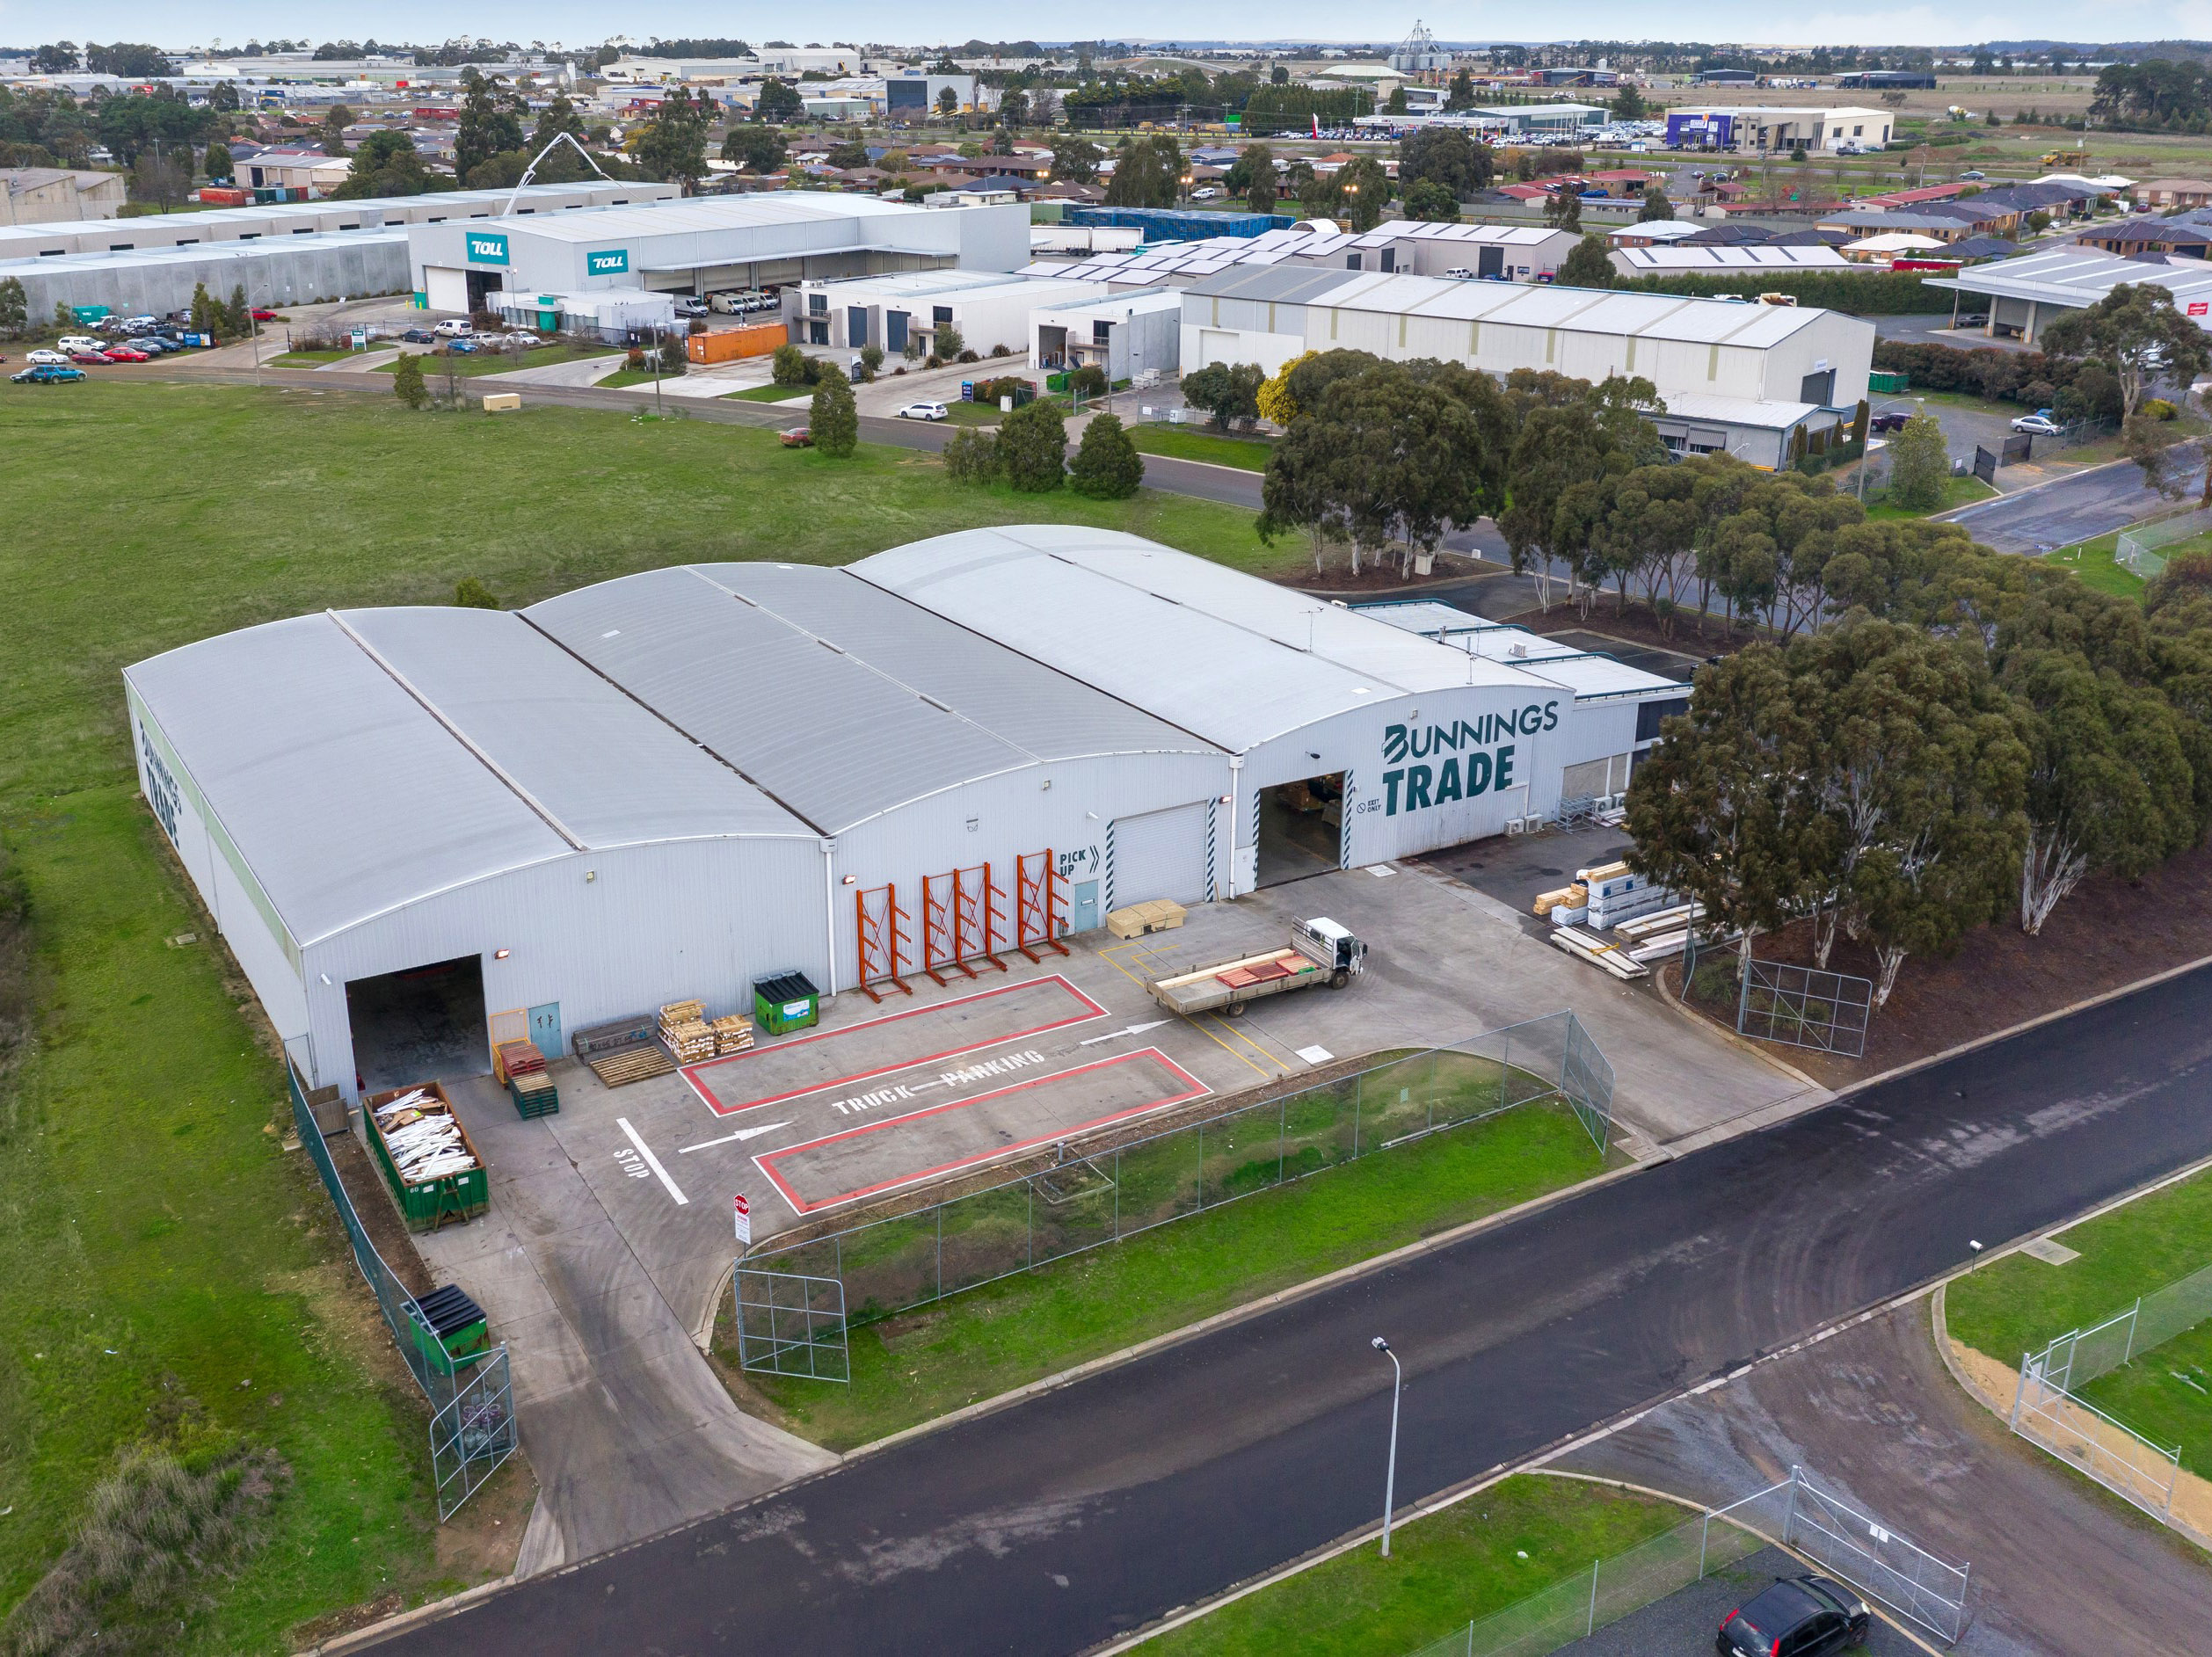 Former Bunnings Trade Facility Plus Development Land – Offered with Vacant Possession